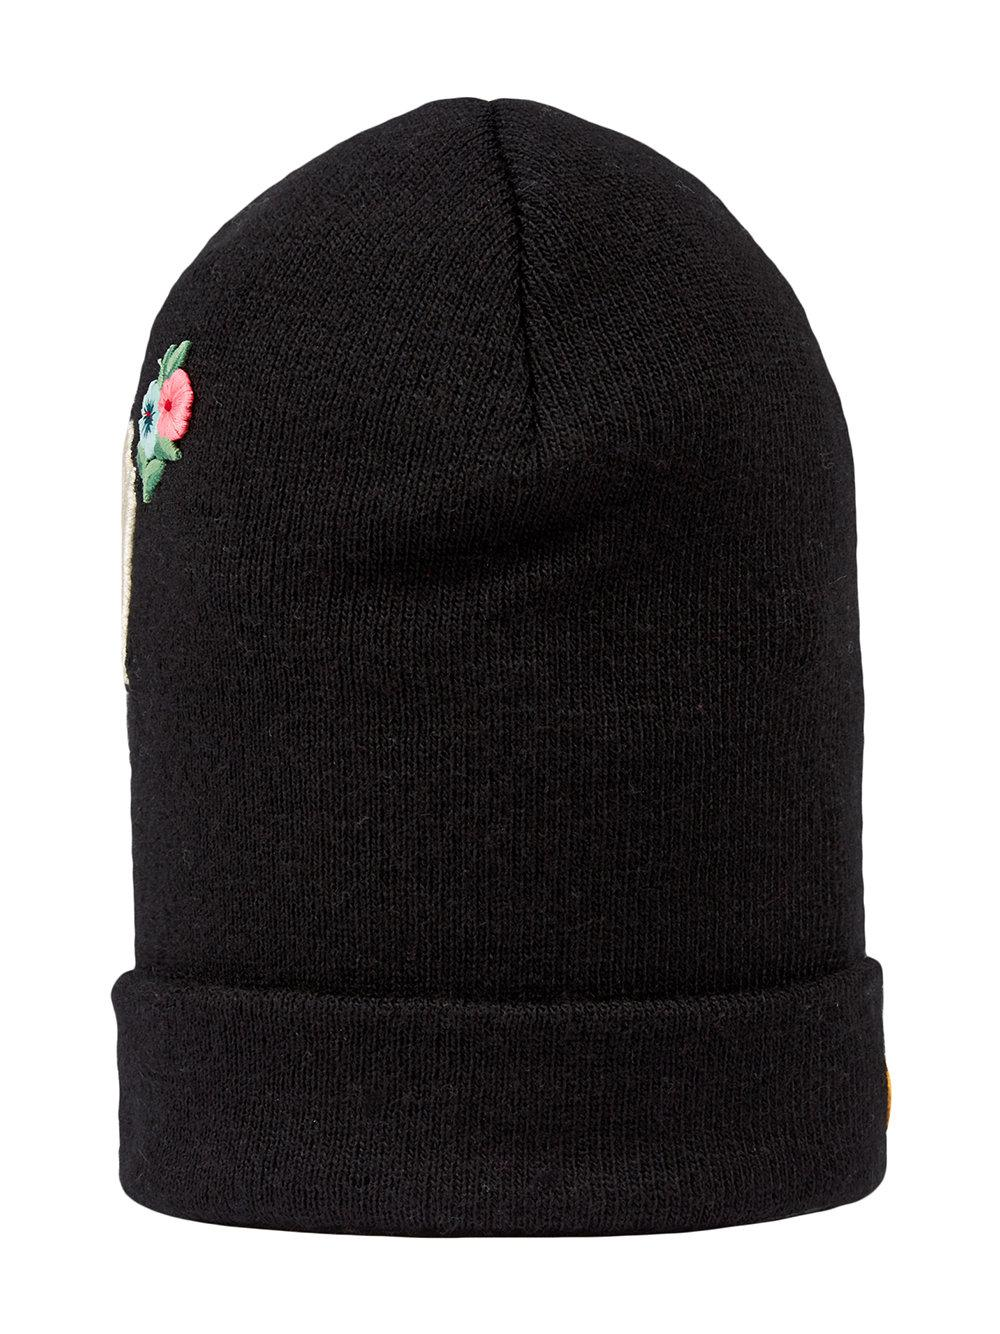 6476cfb32ceff Gucci Wool Hat With Ny Yankeestm Patch in Black - Save 9% - Lyst